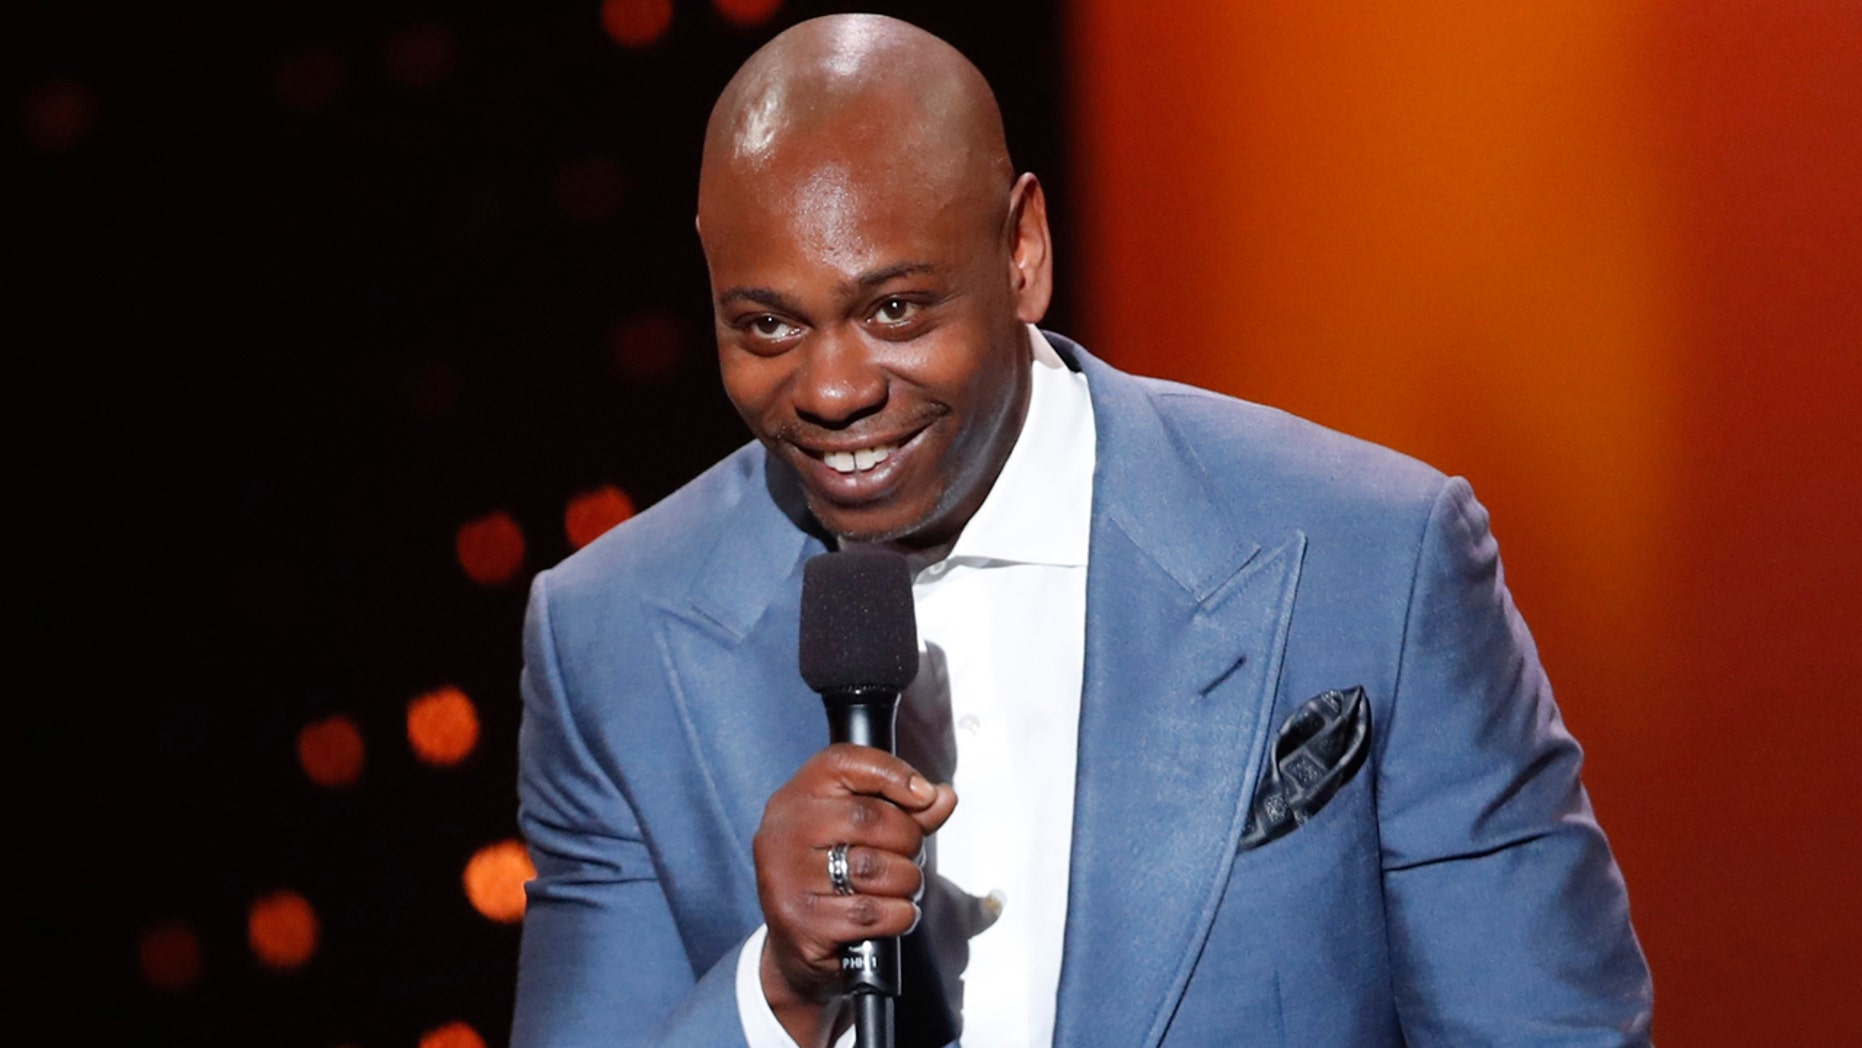 Dave Chappelle says he feels sorry for poor white Trump voters in new stand-up special on Netflix. Here, Chappelle presents an award at the 2017 Canadian Screen Awards in Toronto.